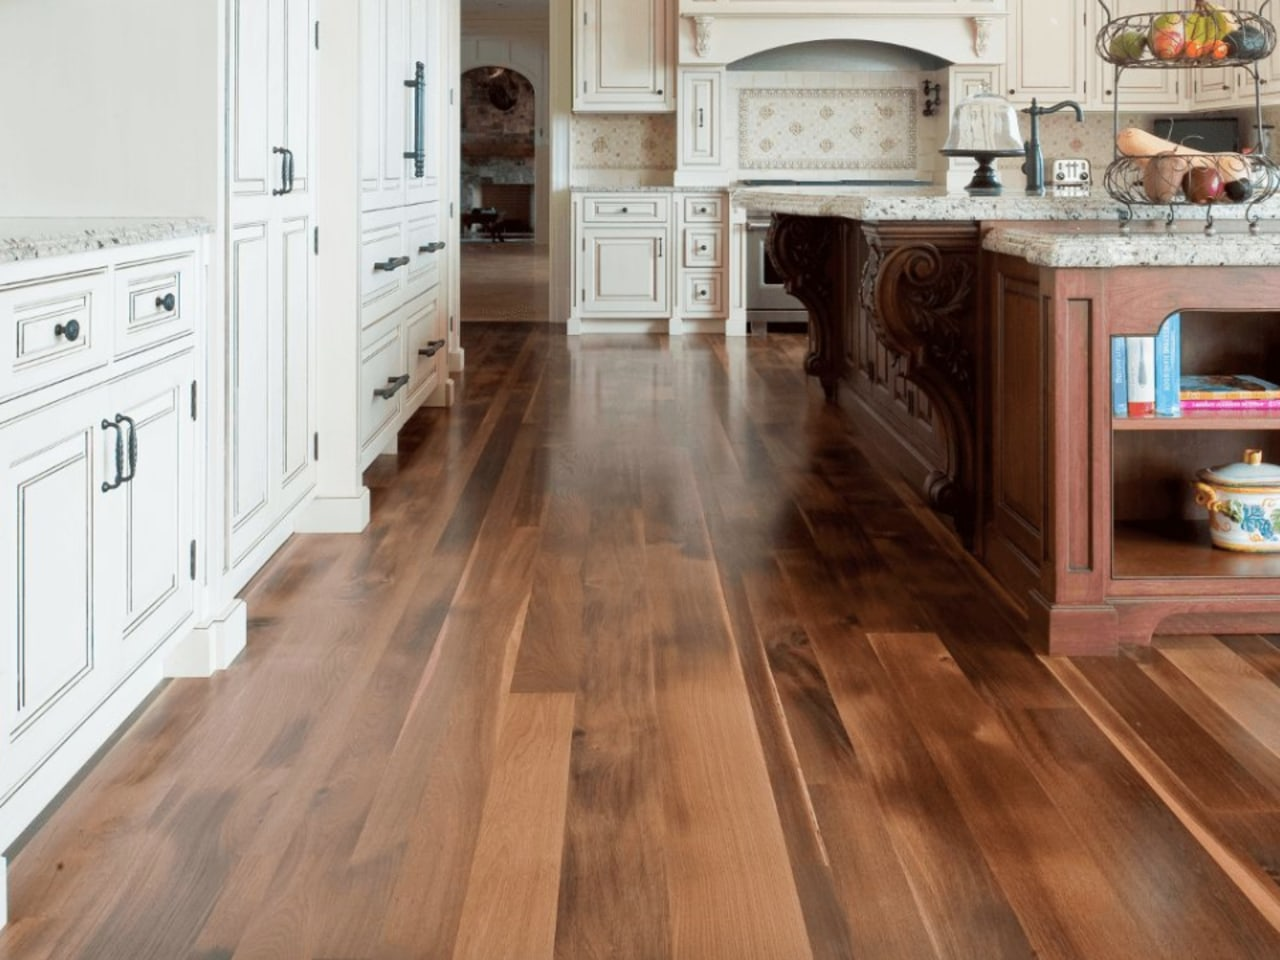 Laminate can replicate a number of different floor cabinetry, countertop, cuisine classique, floor, flooring, hardwood, kitchen, laminate flooring, tile, wood, wood flooring, wood stain, brown, white